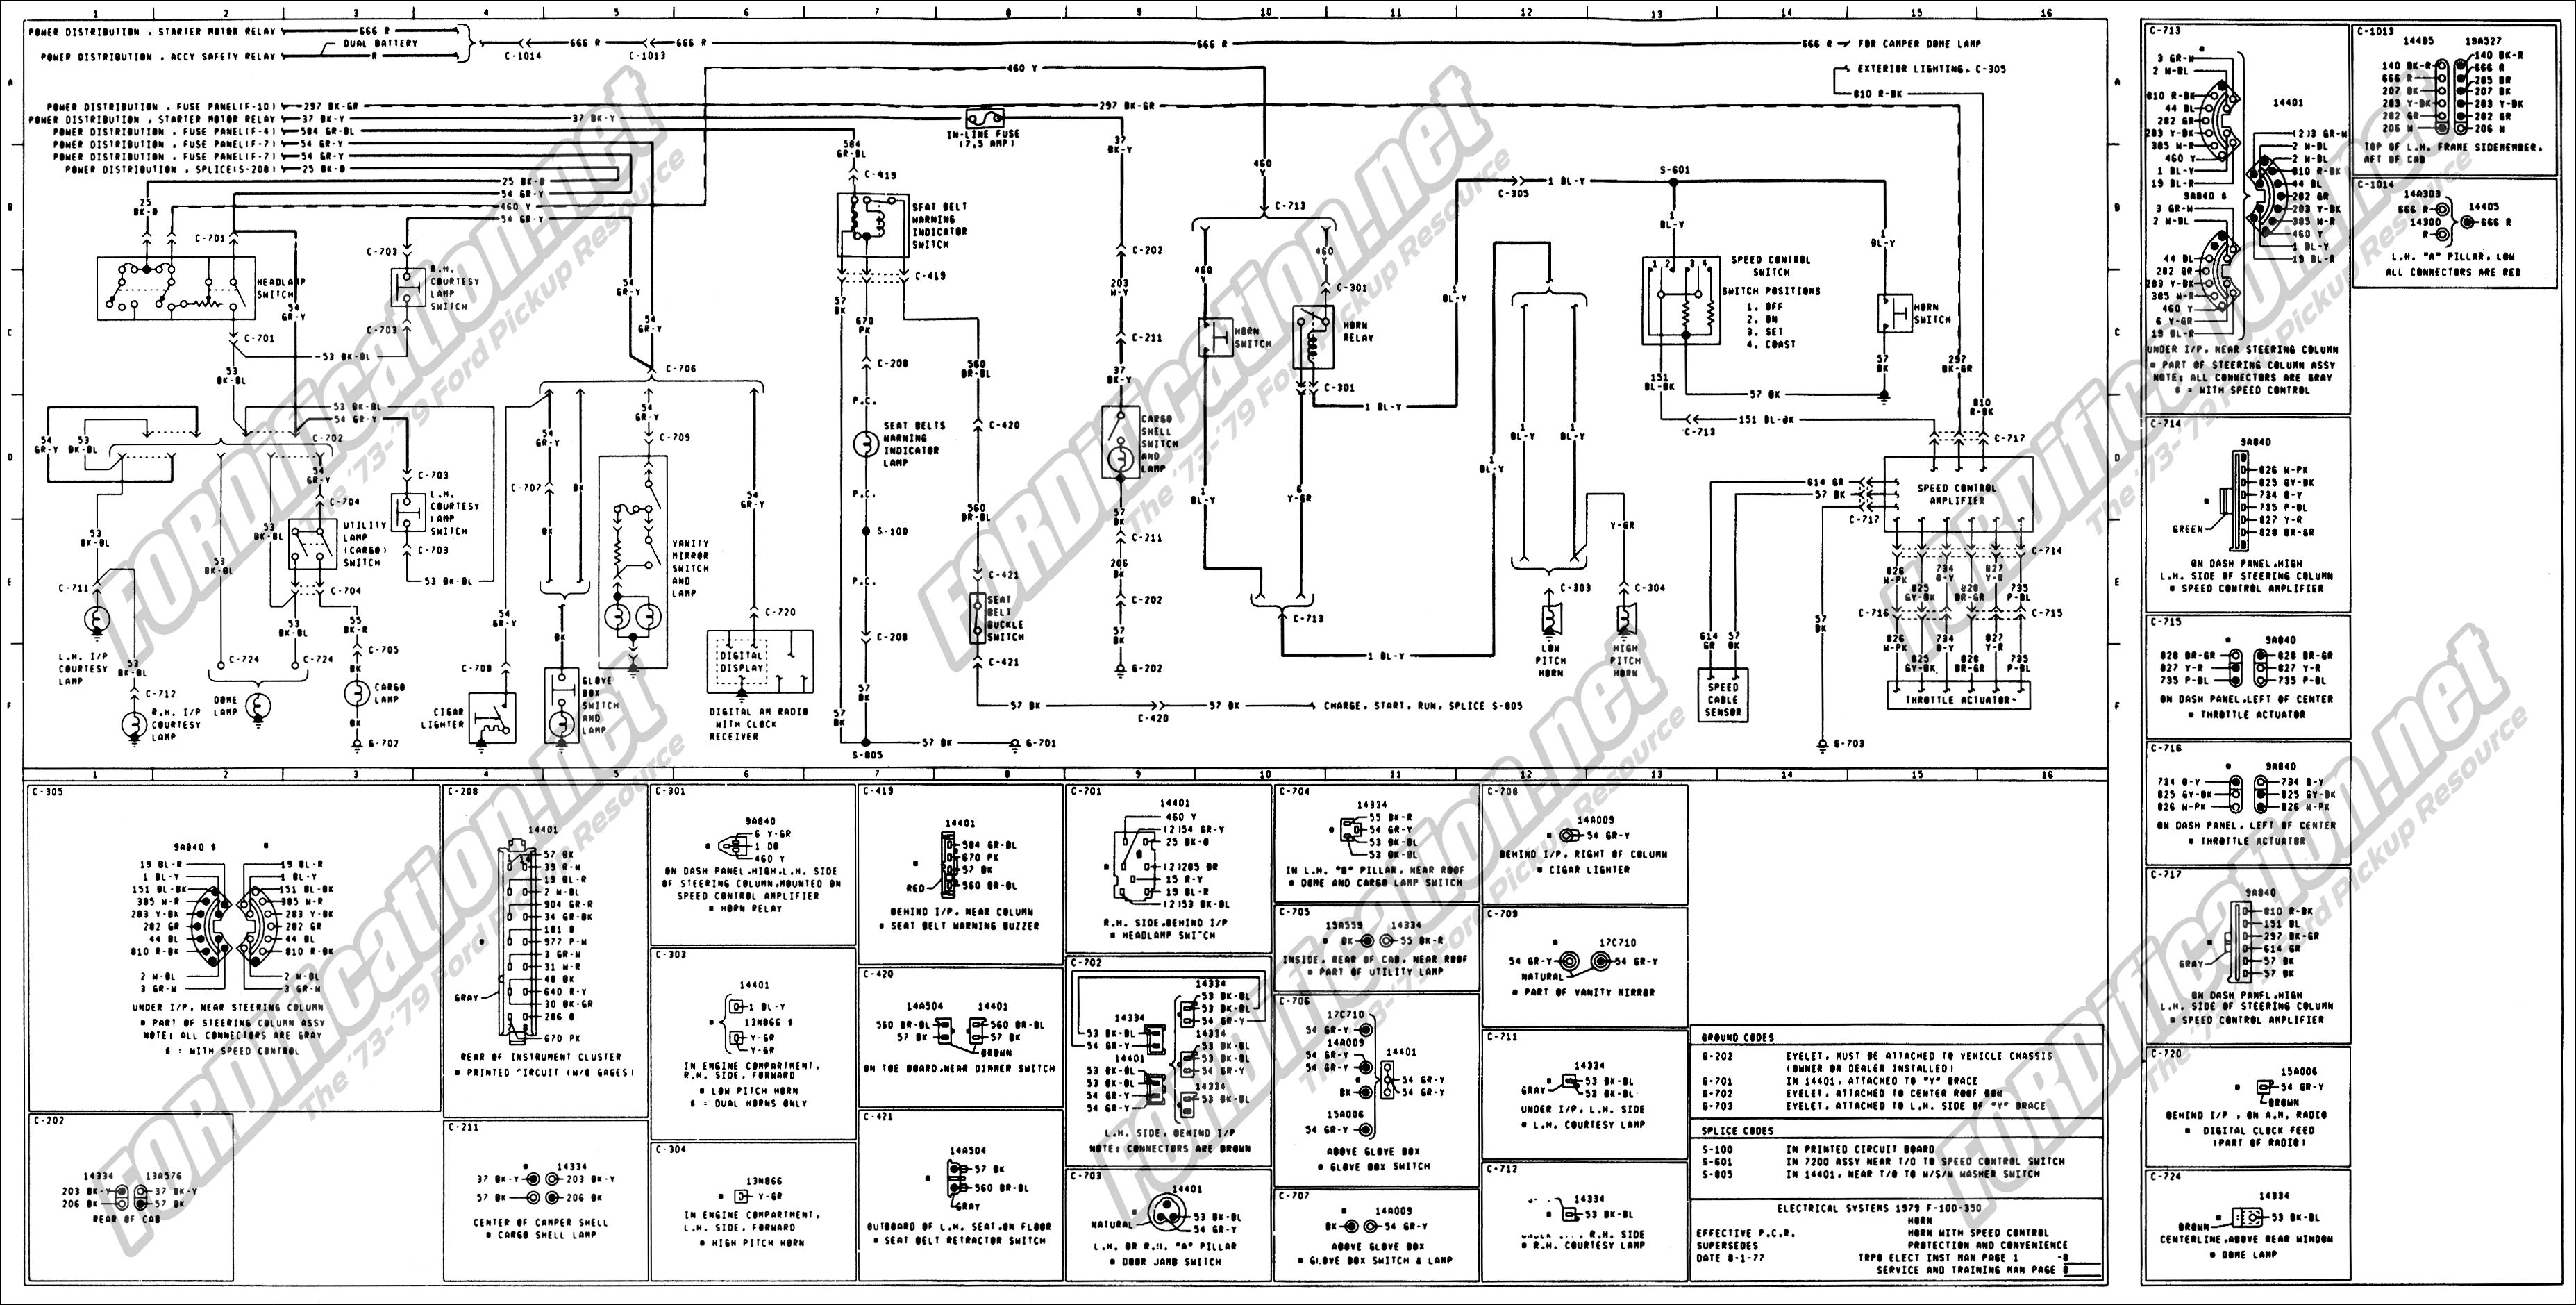 1999 ford f 250 fuse diagram 1973 1979 ford truck wiring diagrams schematics fordification net page 08